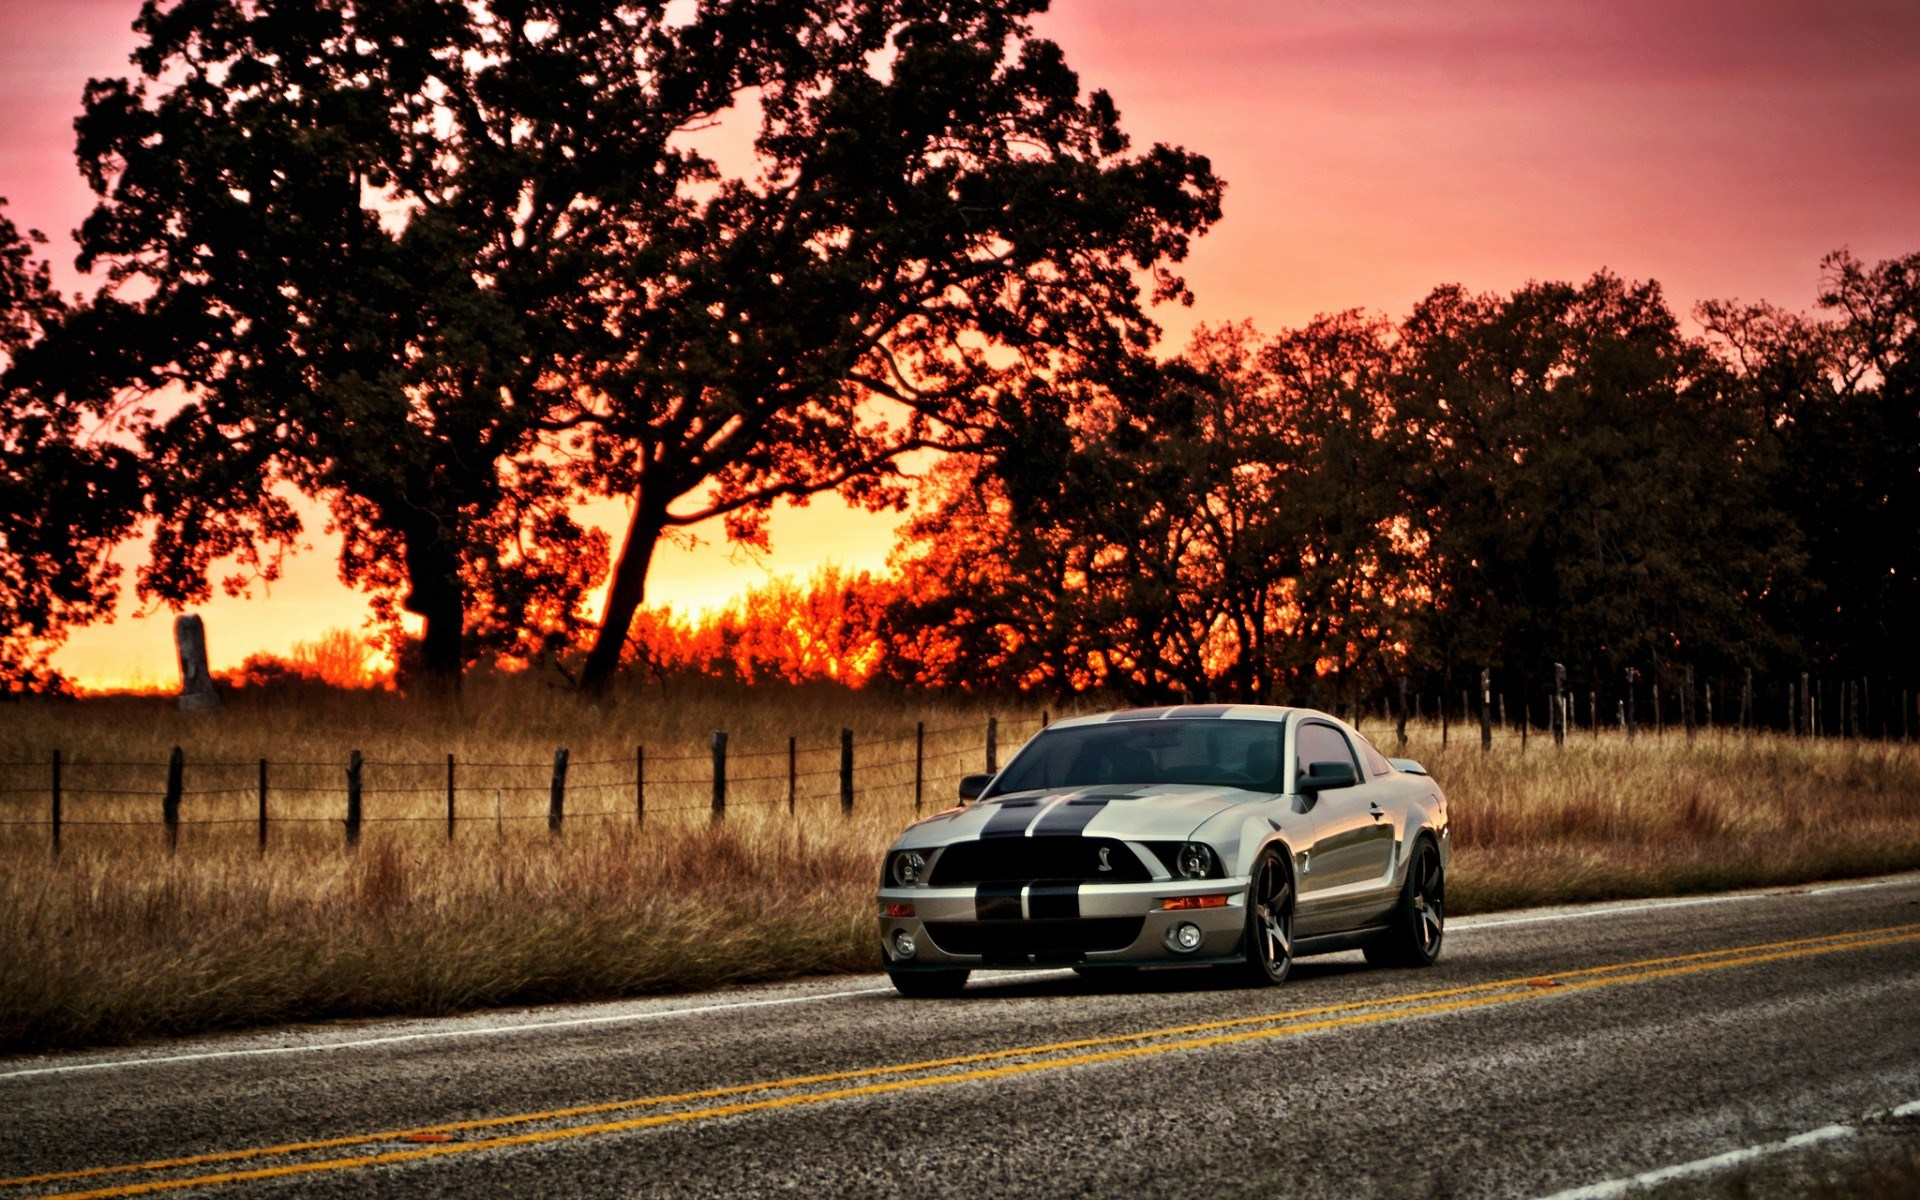 The Name Shelby Wallpaper  WallpaperSafari